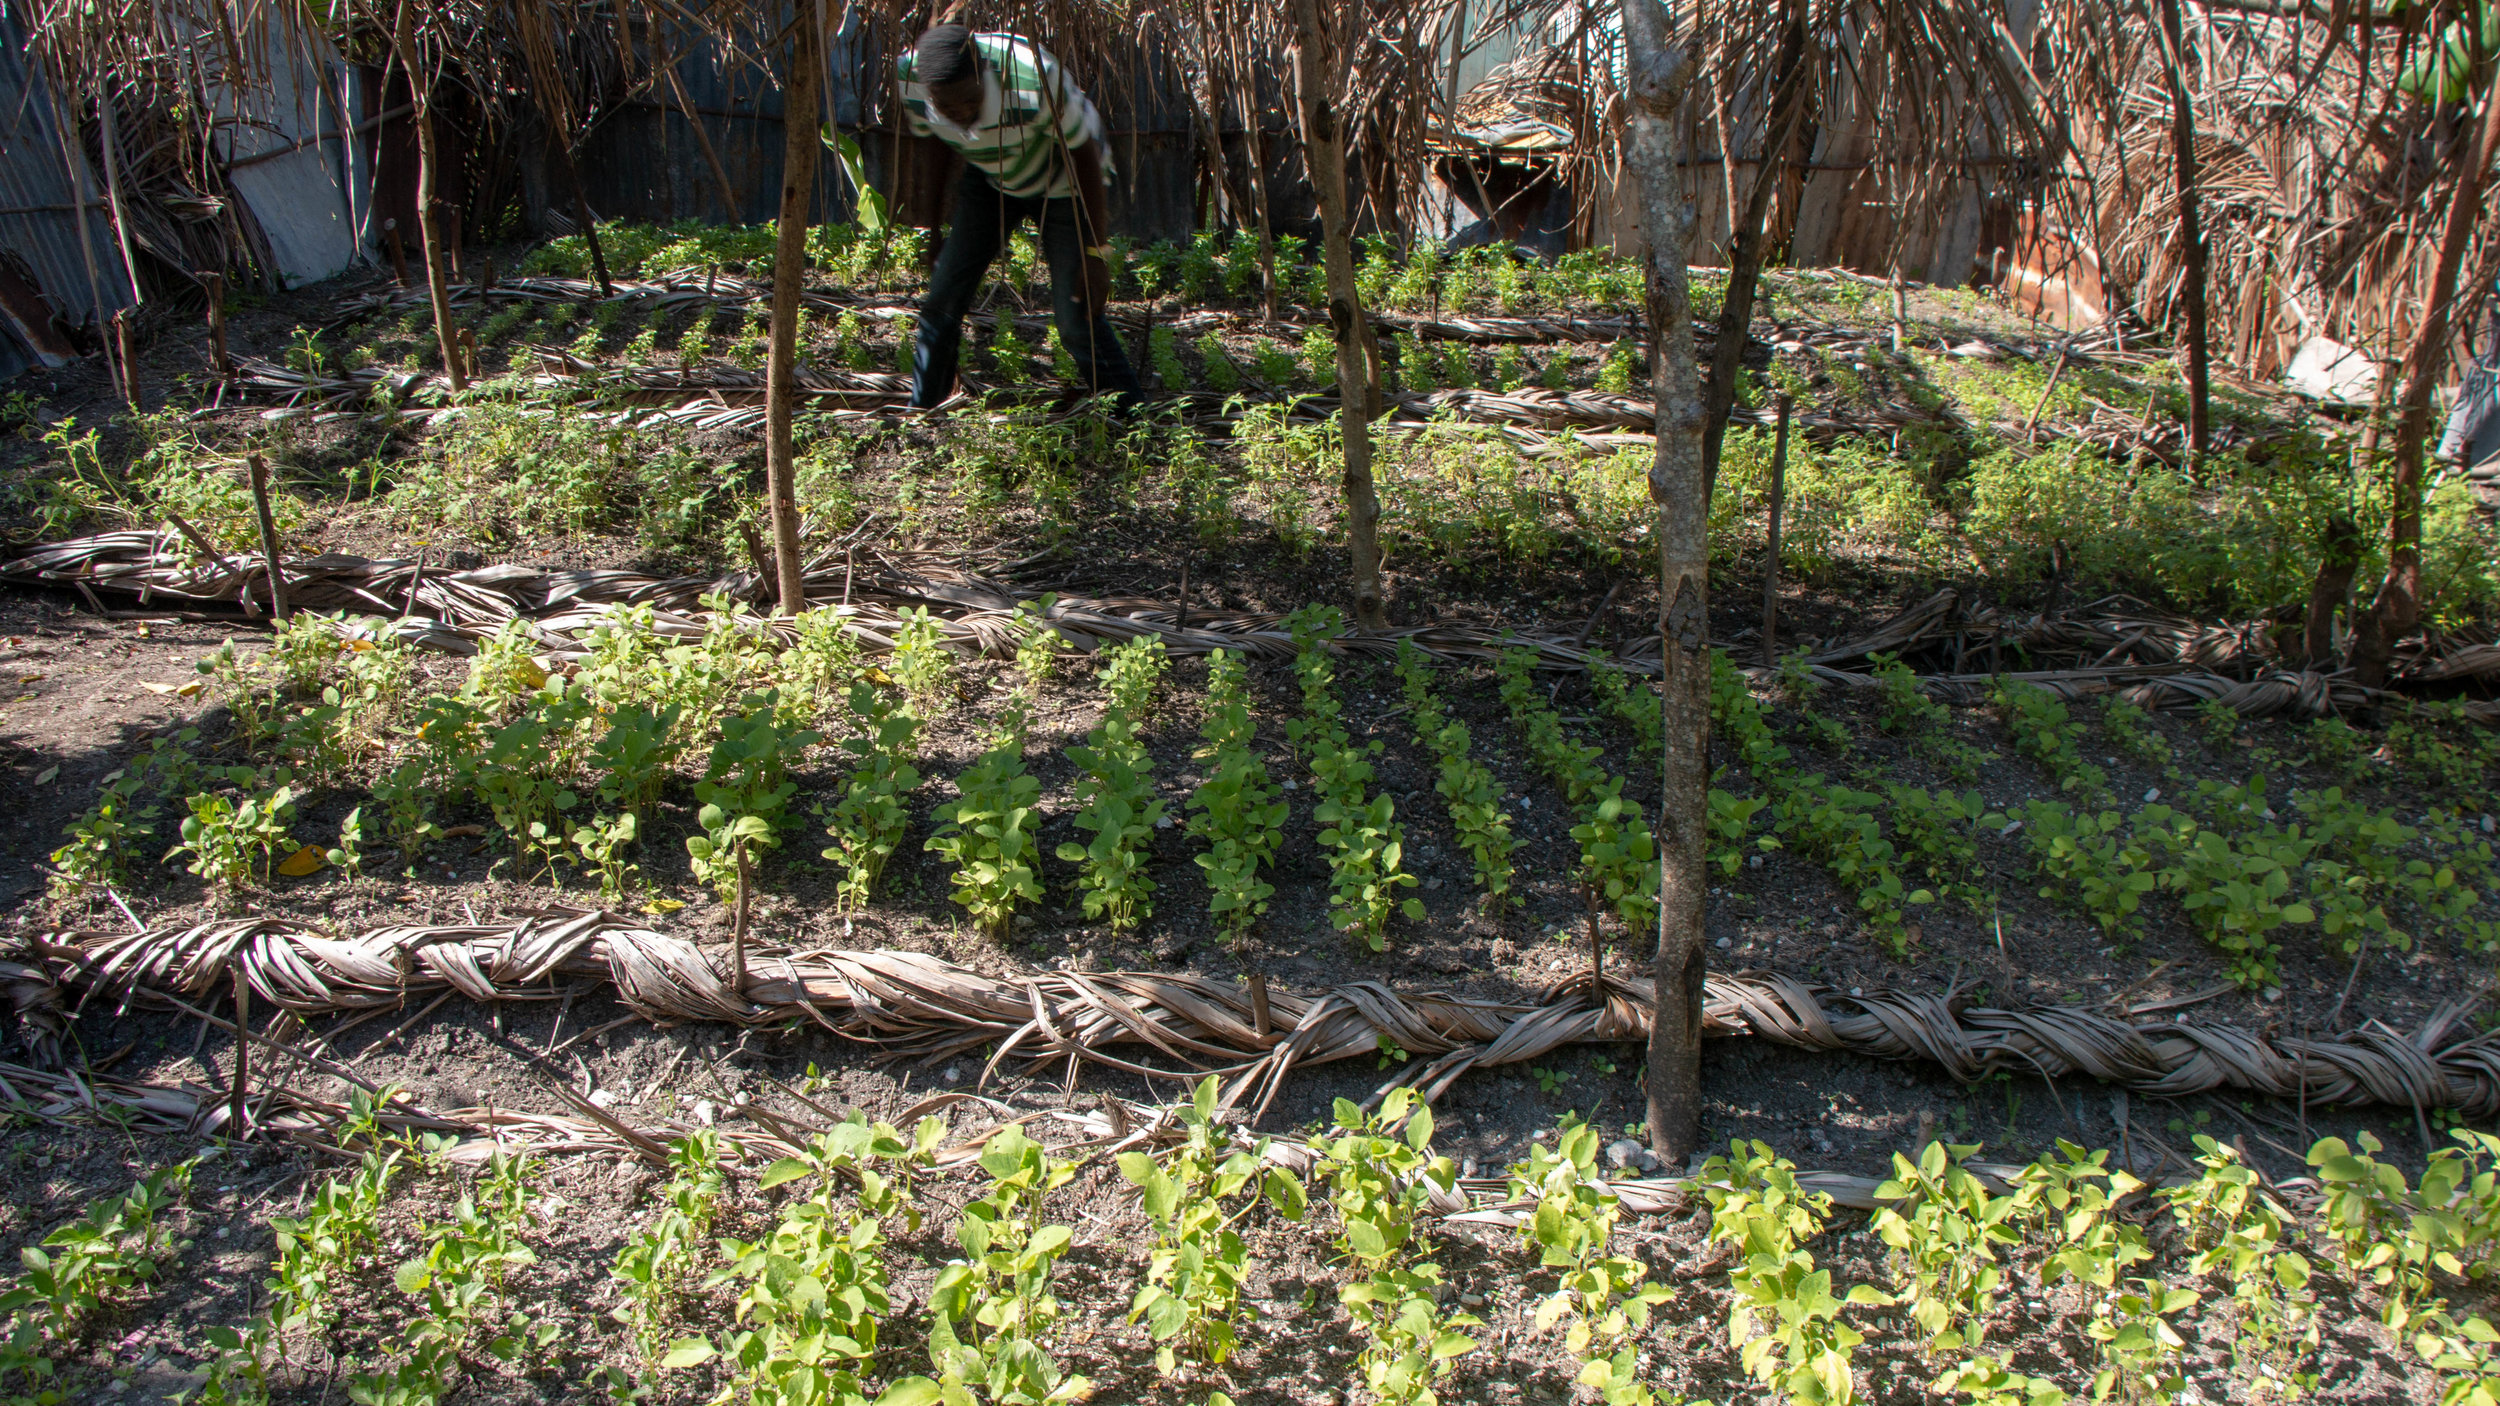 Pierre Makersom Jocelyn tends a vegetable nursery started as part of an MCC-supported project to help families recover losses after Hurricane Matthew struck St-Jean-du-Sud, and other parts of southern Haiti, in late September 2016. The devastation caused by the hurricane meant that many families saw their livelihoods destroyed.